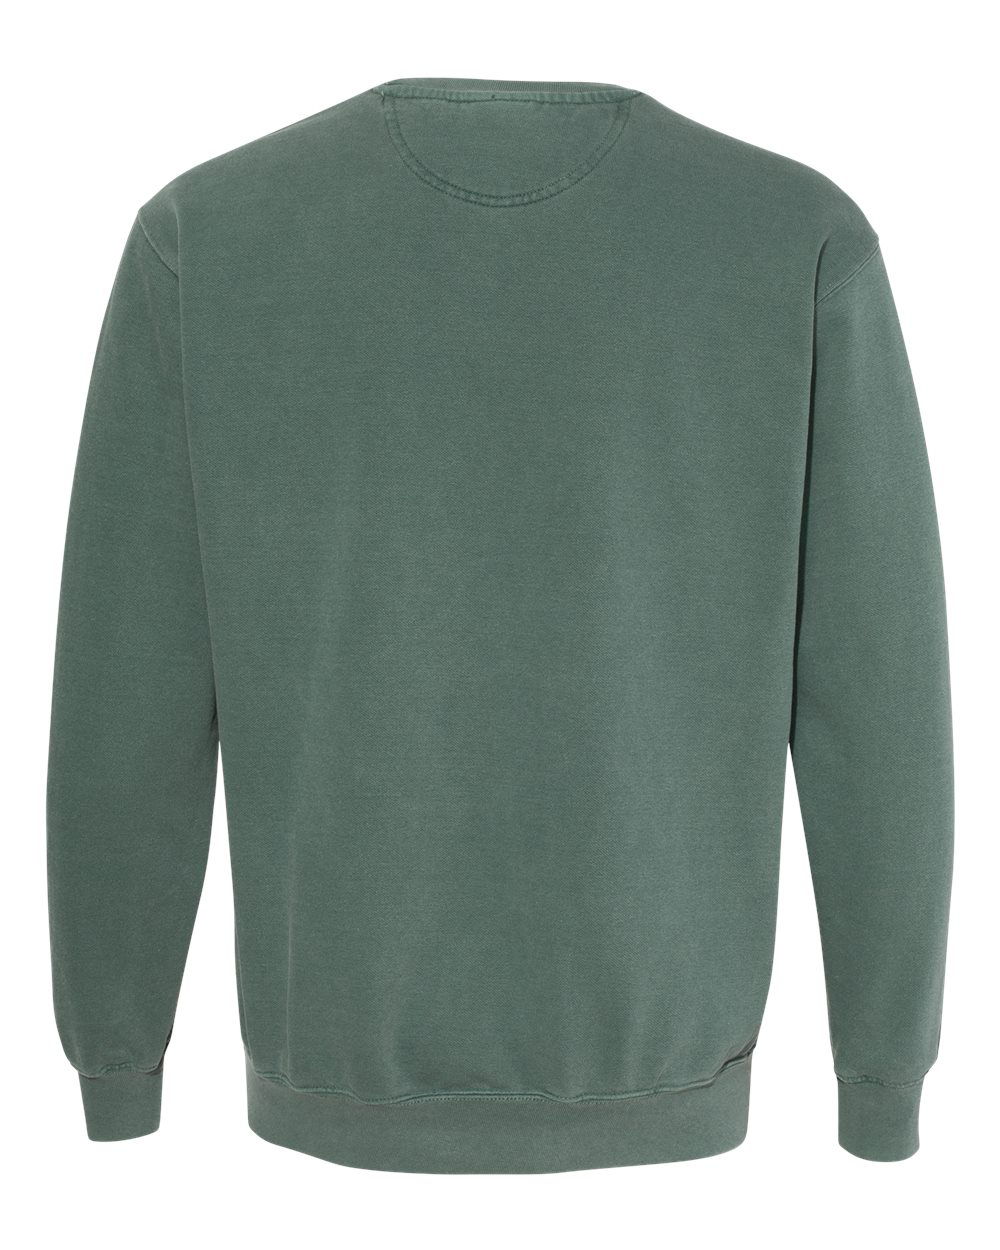 Comfort-Colors-Mens-Garment-Dyed-Ringspun-Crewneck-Sweatshirt-1566-up-to-3XL miniature 10